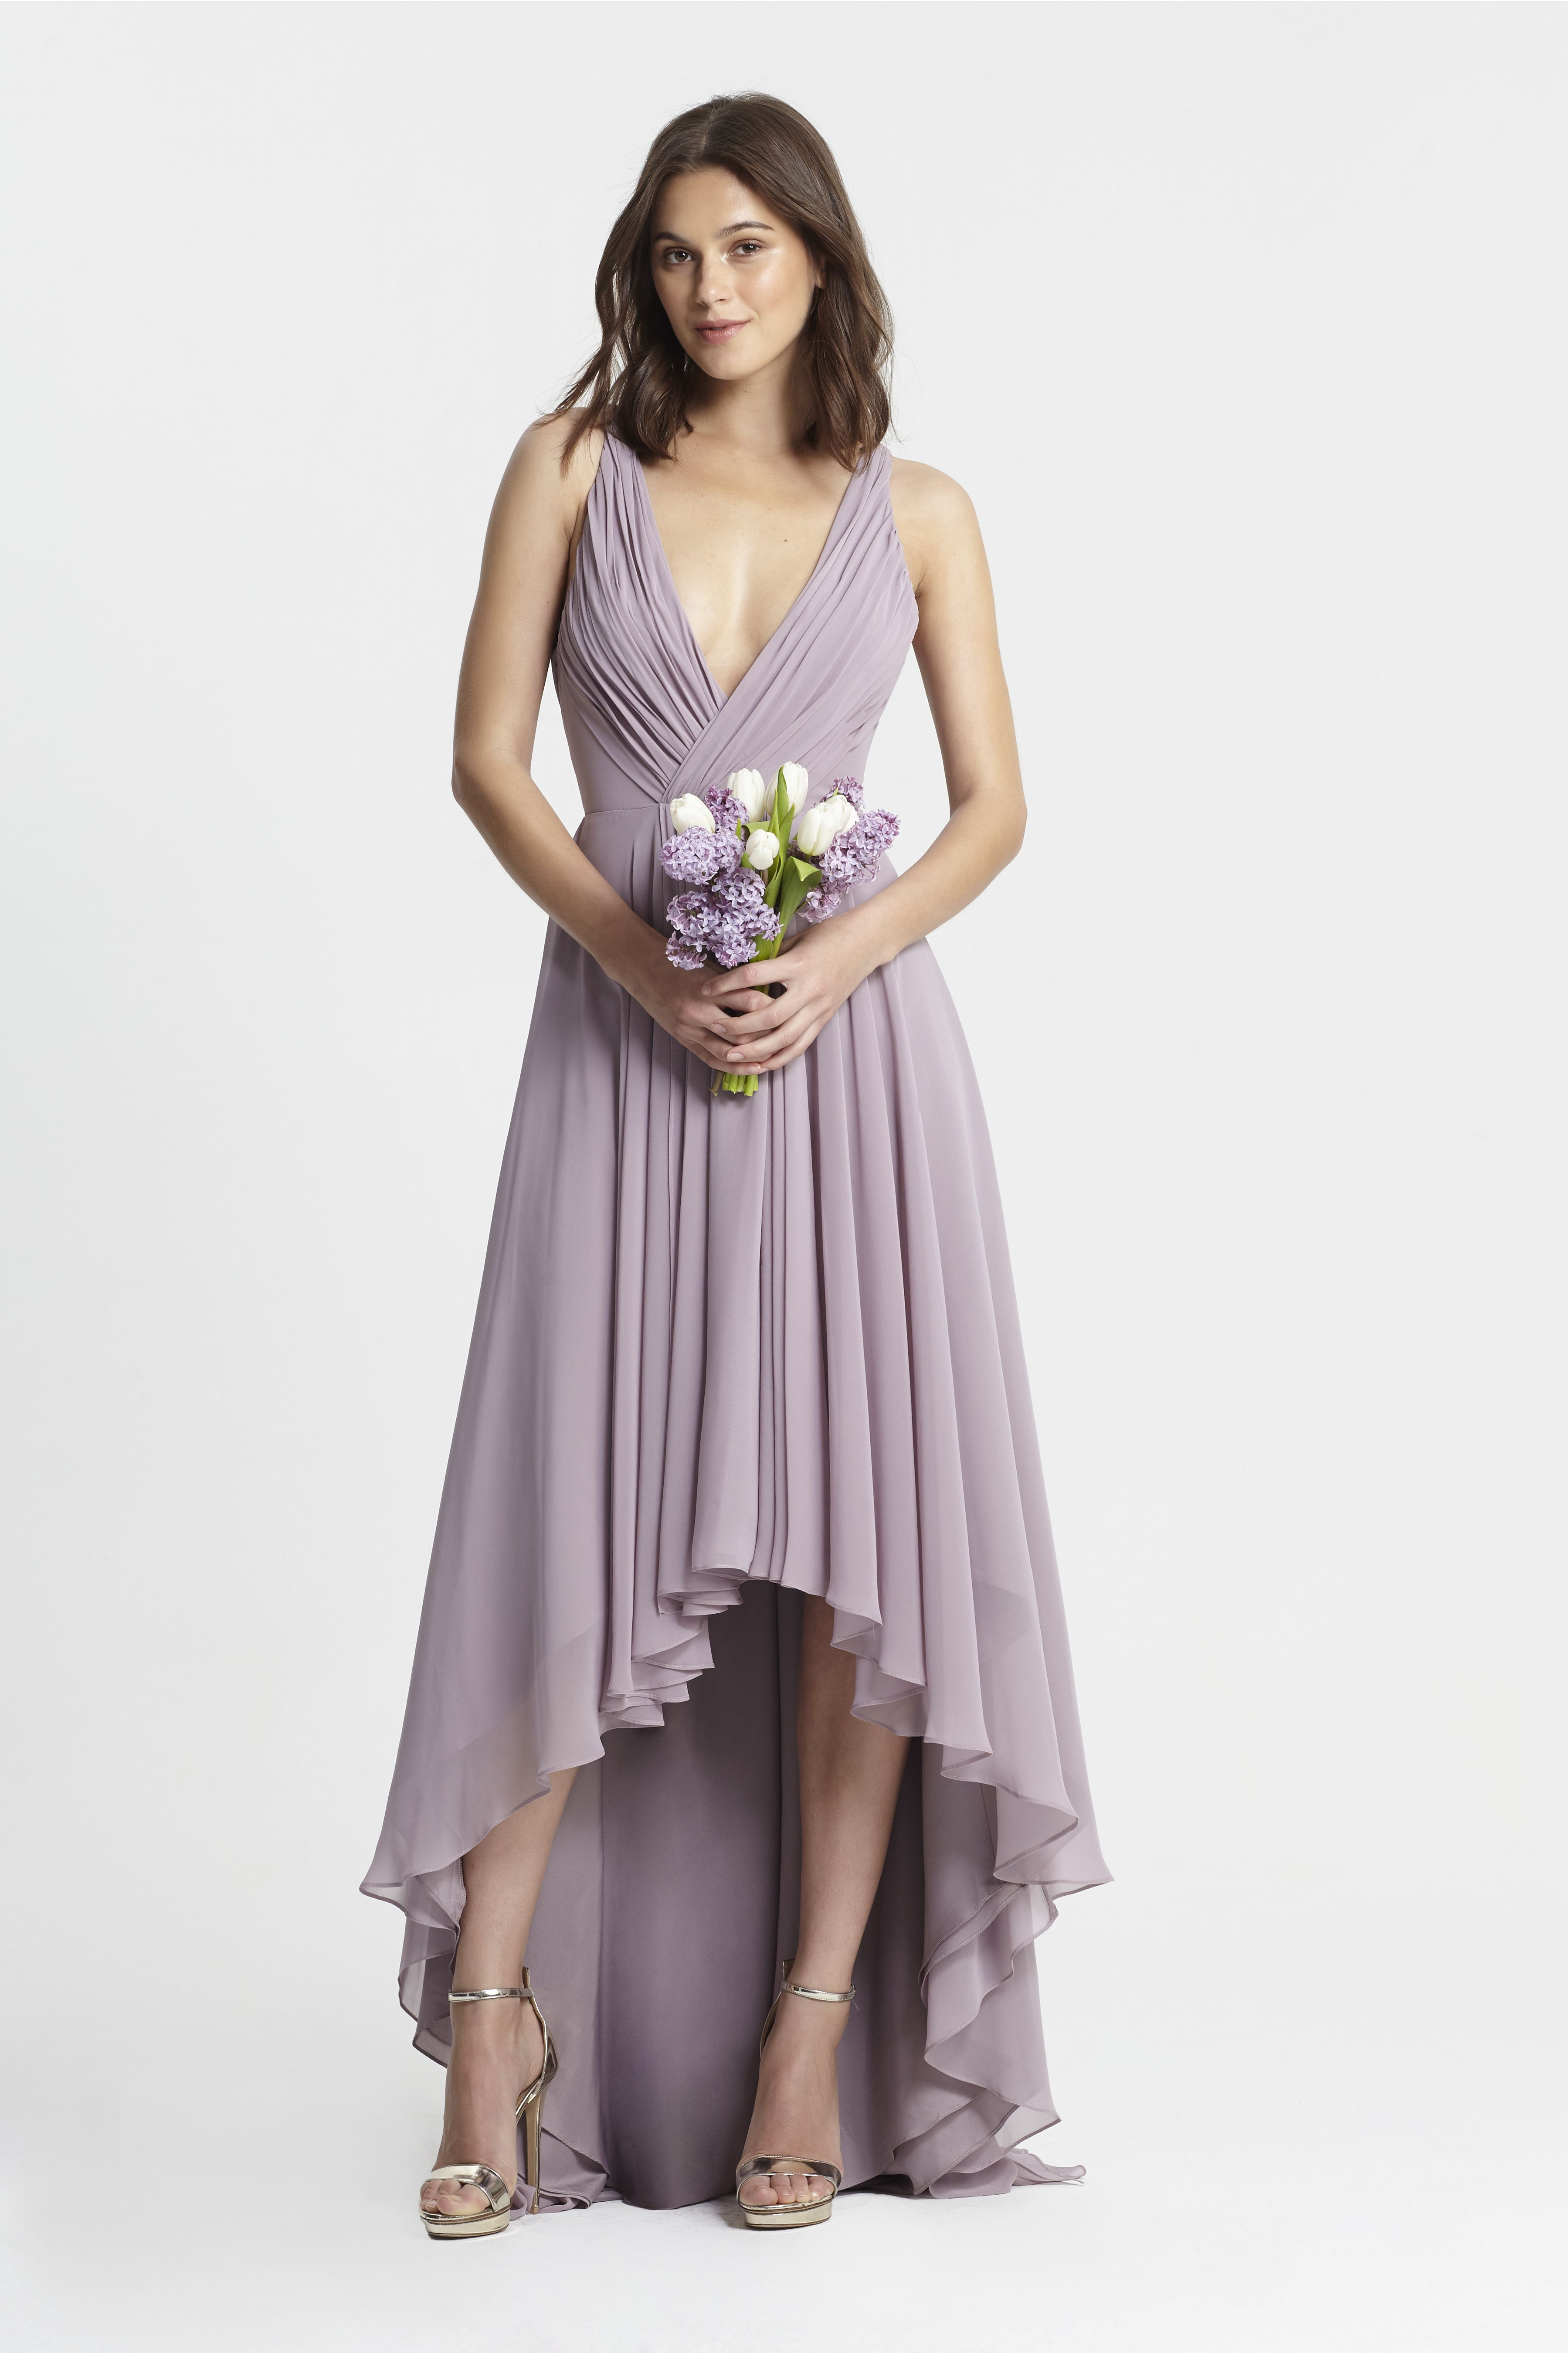 Monique lhuillier spring 2017 bridesmaids style 450378 lilac cheap name brand bridesmaid dresses ombrellifo Choice Image